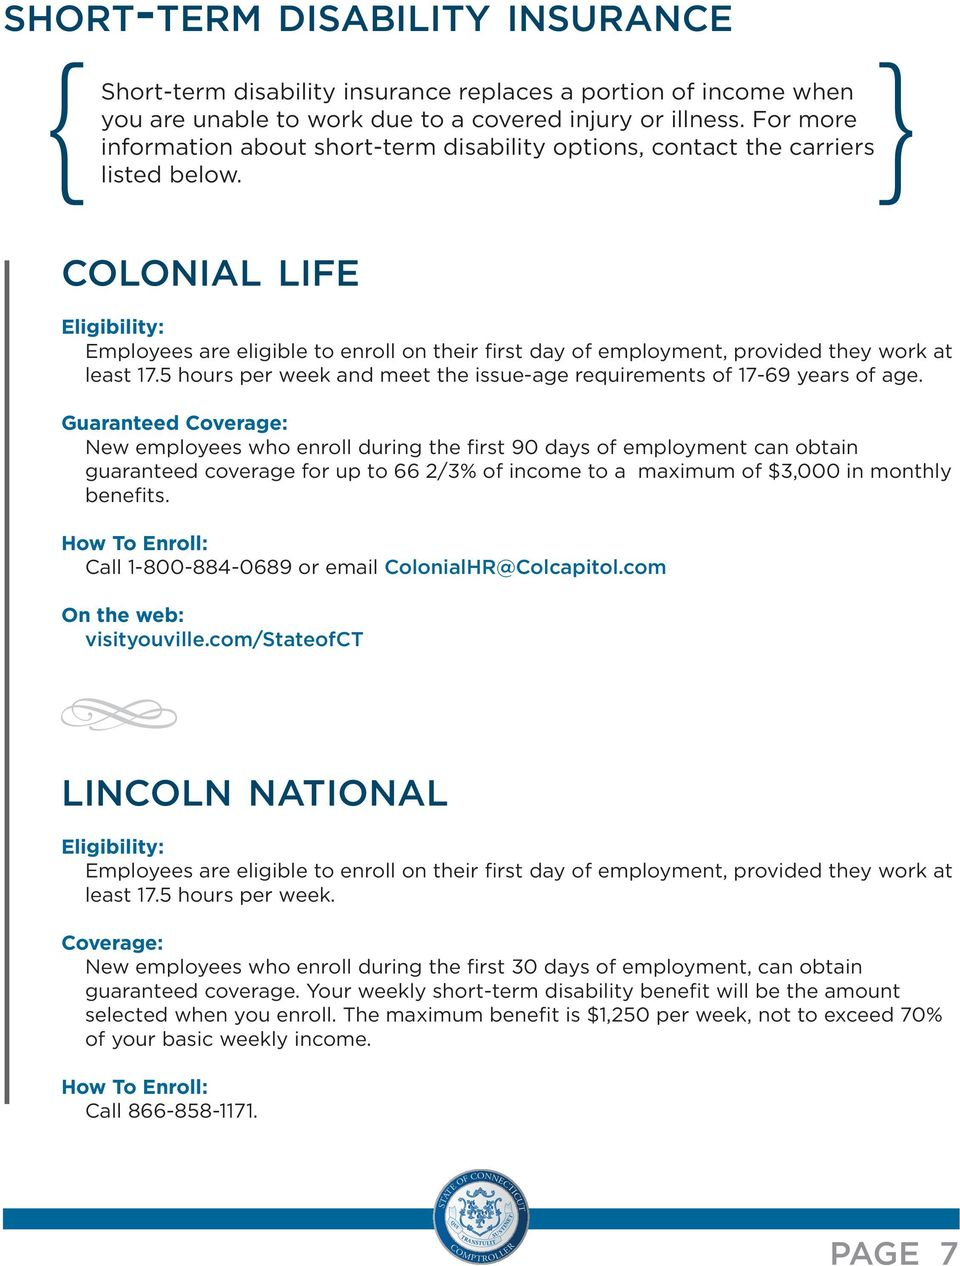 colonial life Eligibility: Employees are eligible to enroll on their first day of employment, provided they work at least 17.5 hours per week and meet the issue-age requirements of 17-69 years of age.